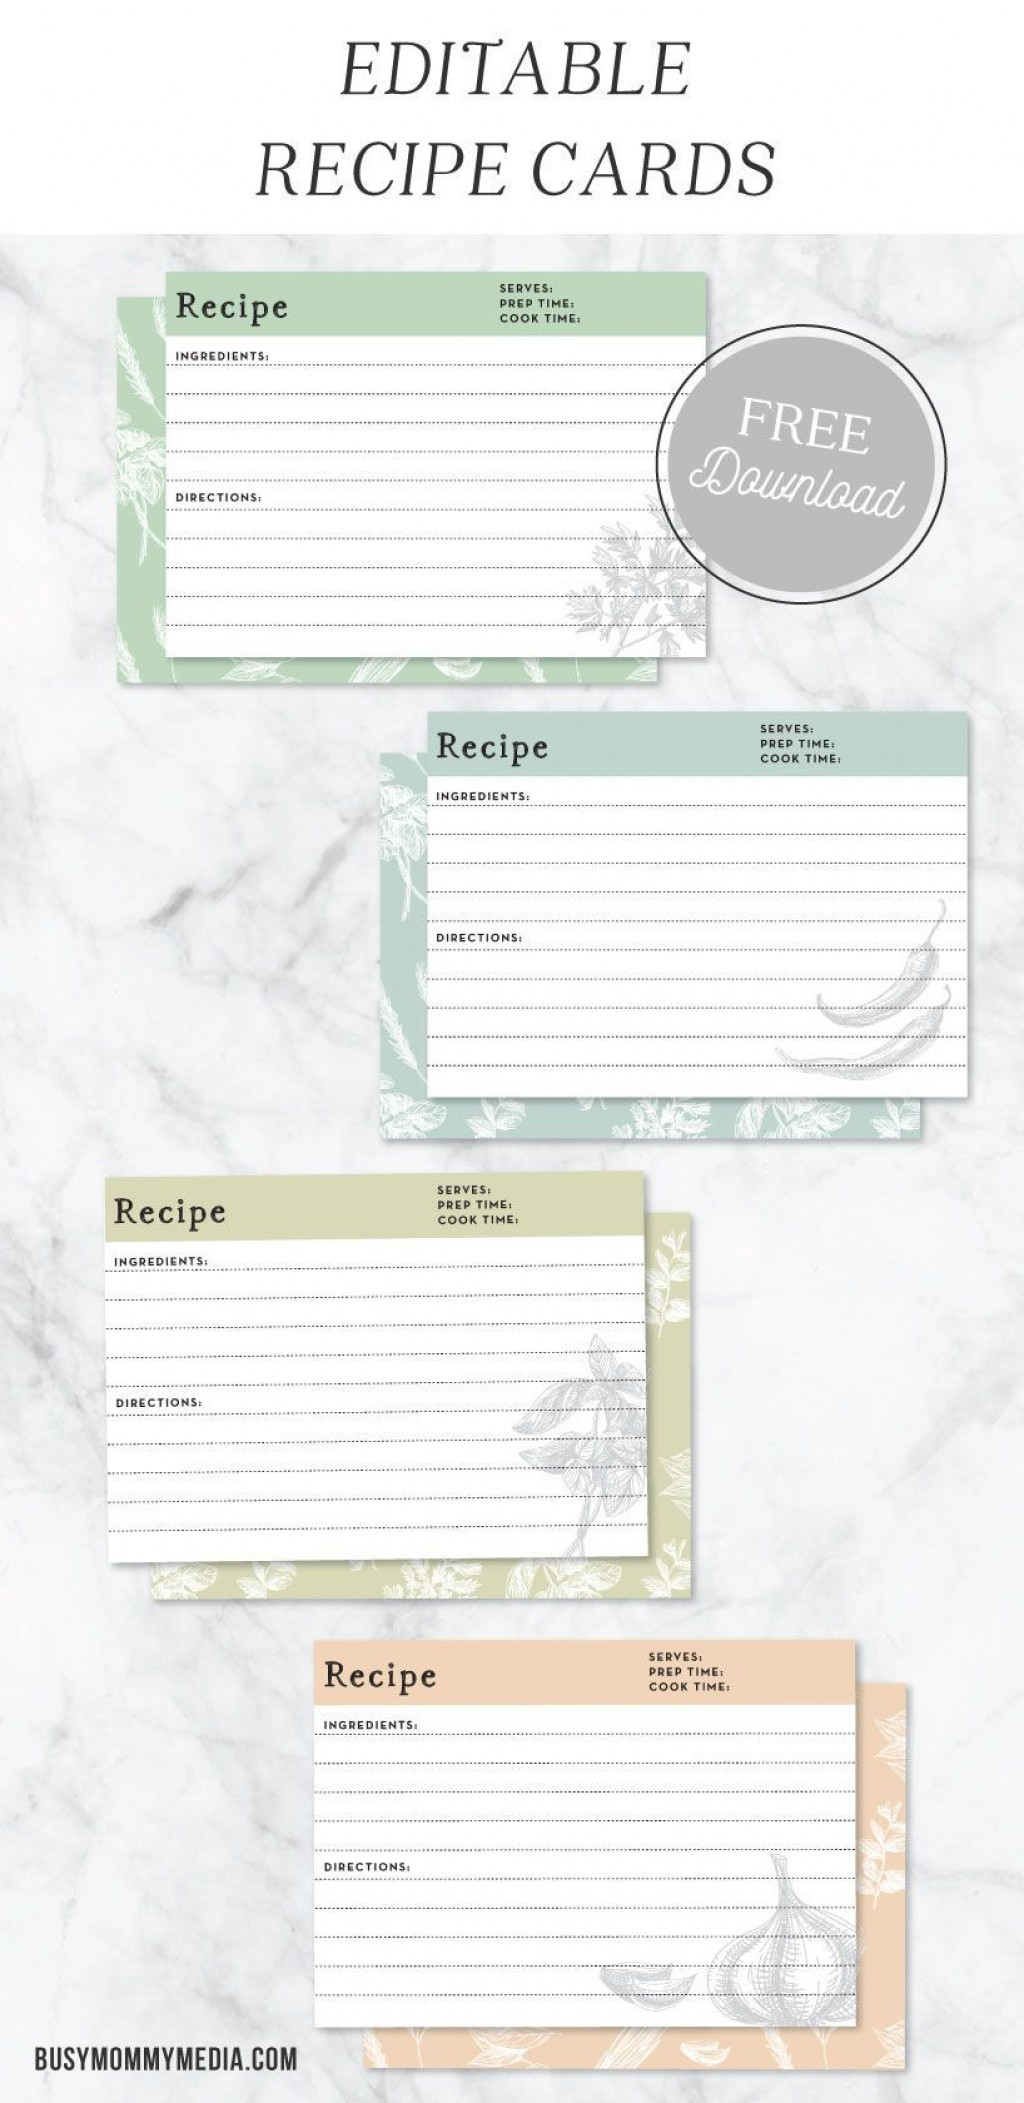 006 Imposing Editable Recipe Card Template Concept  Free For Microsoft Word 4x6 PageLarge